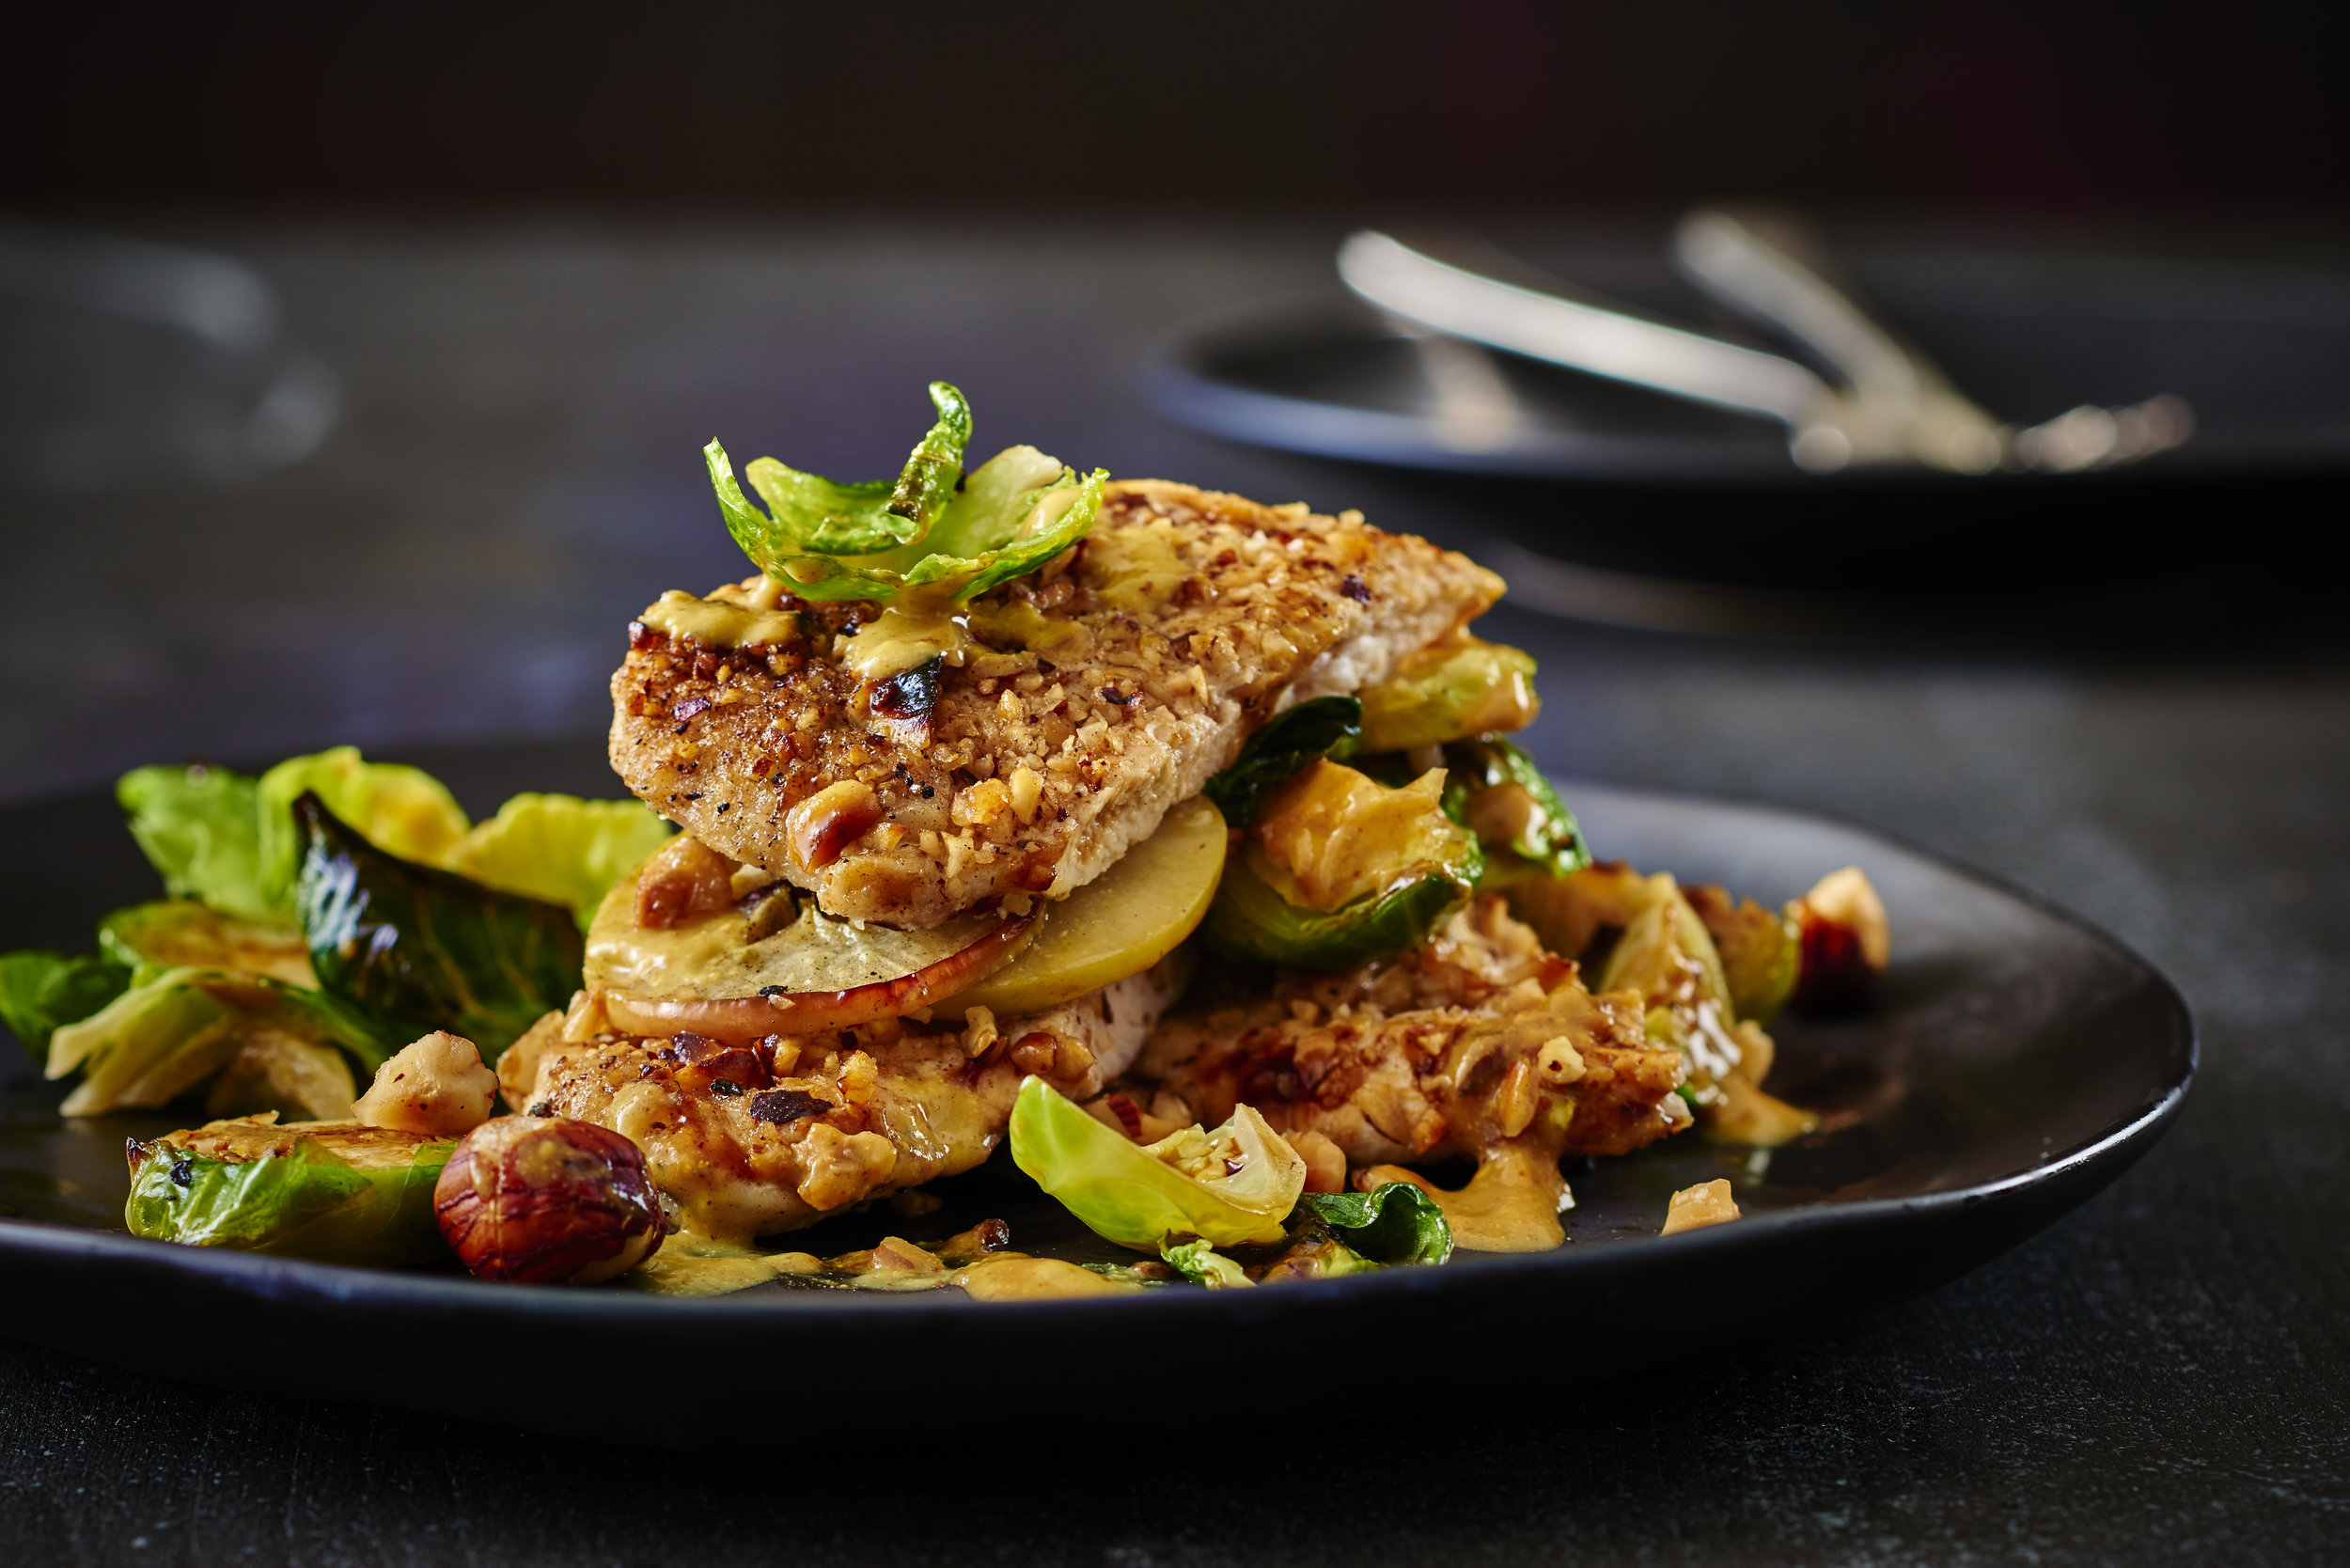 Nut Encrusted Chicken Breasts with Fava Beans